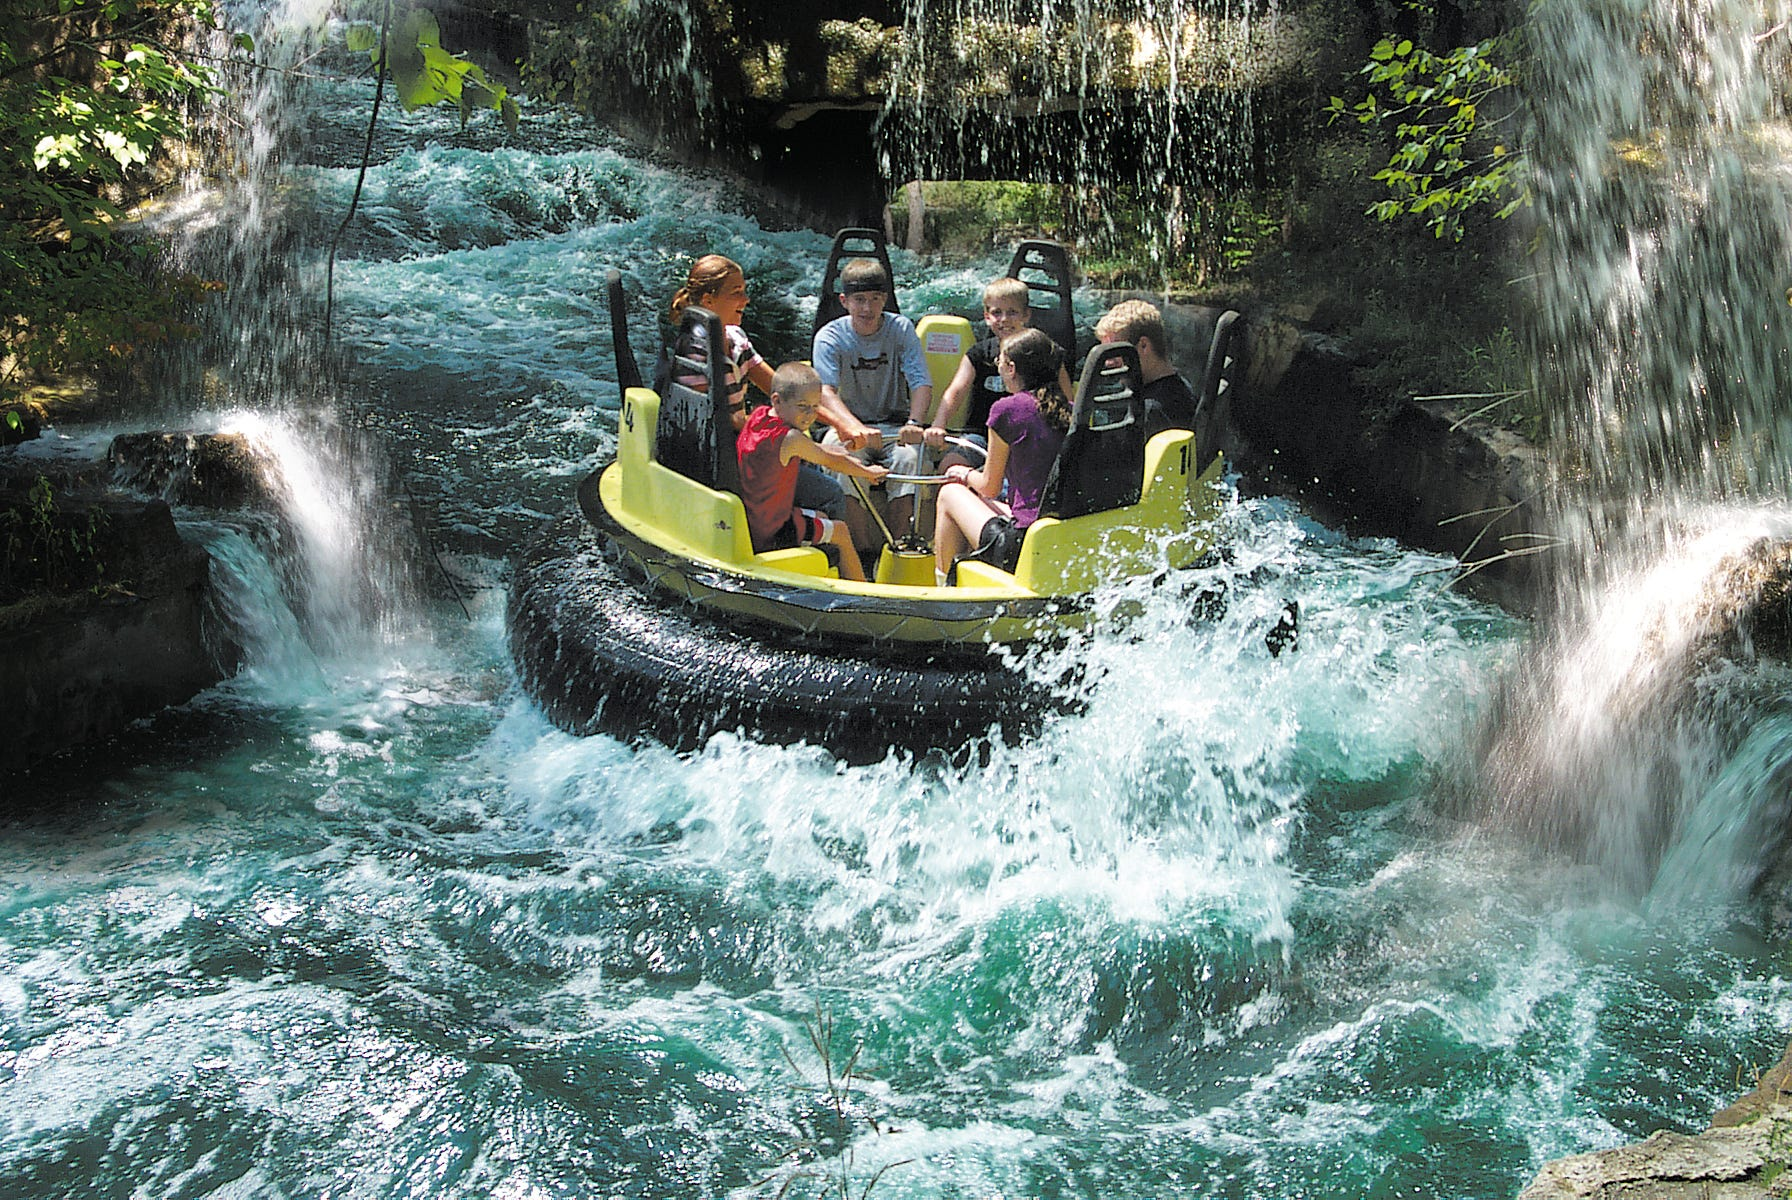 picture about Adventureland Coupons Printable referred to as Adventureland discount coupons des moines iowa - Fridge coupon codes